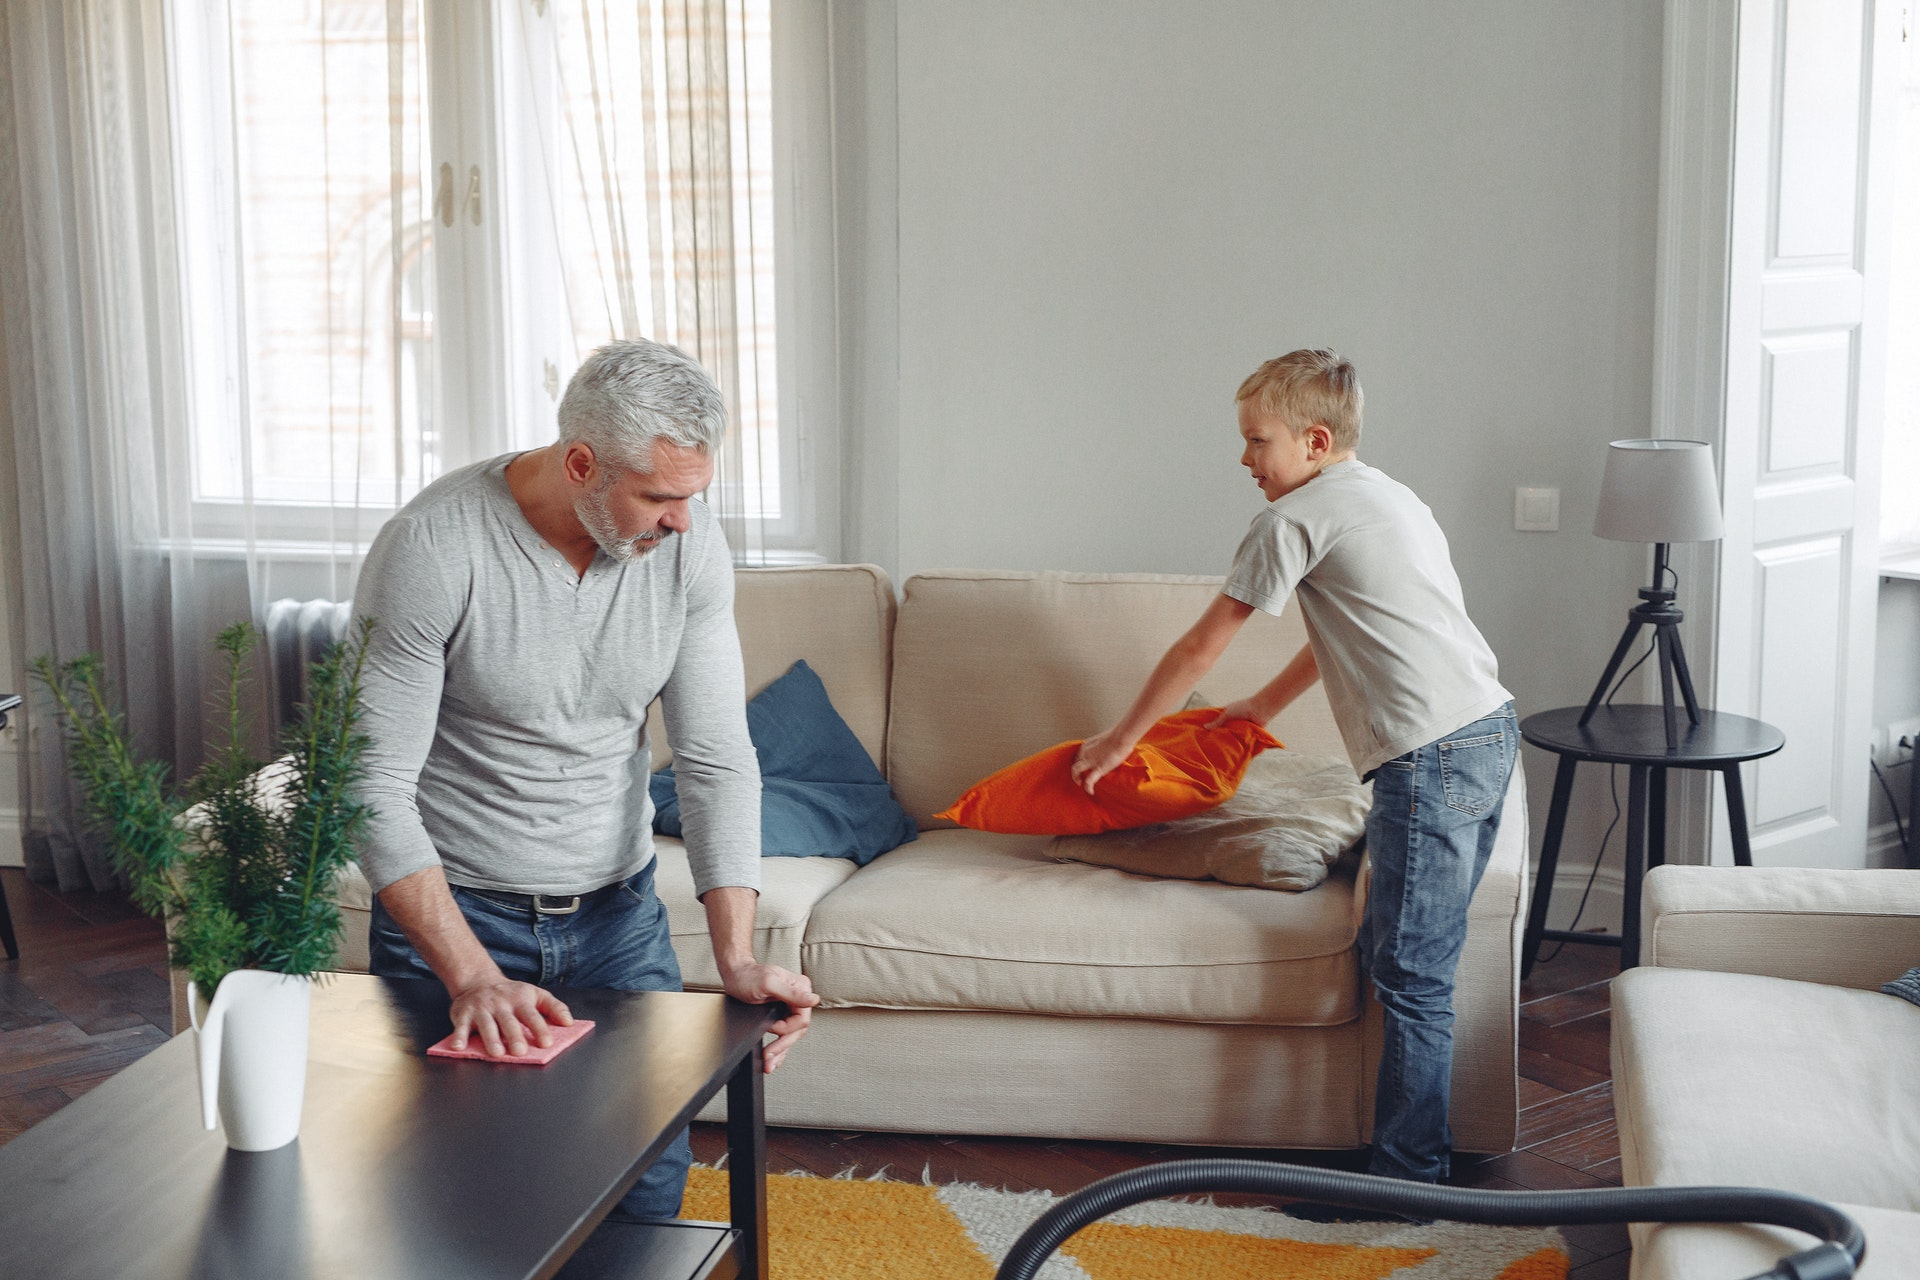 12 Tips For Keeping Your Home Clean With the Kids Out of School